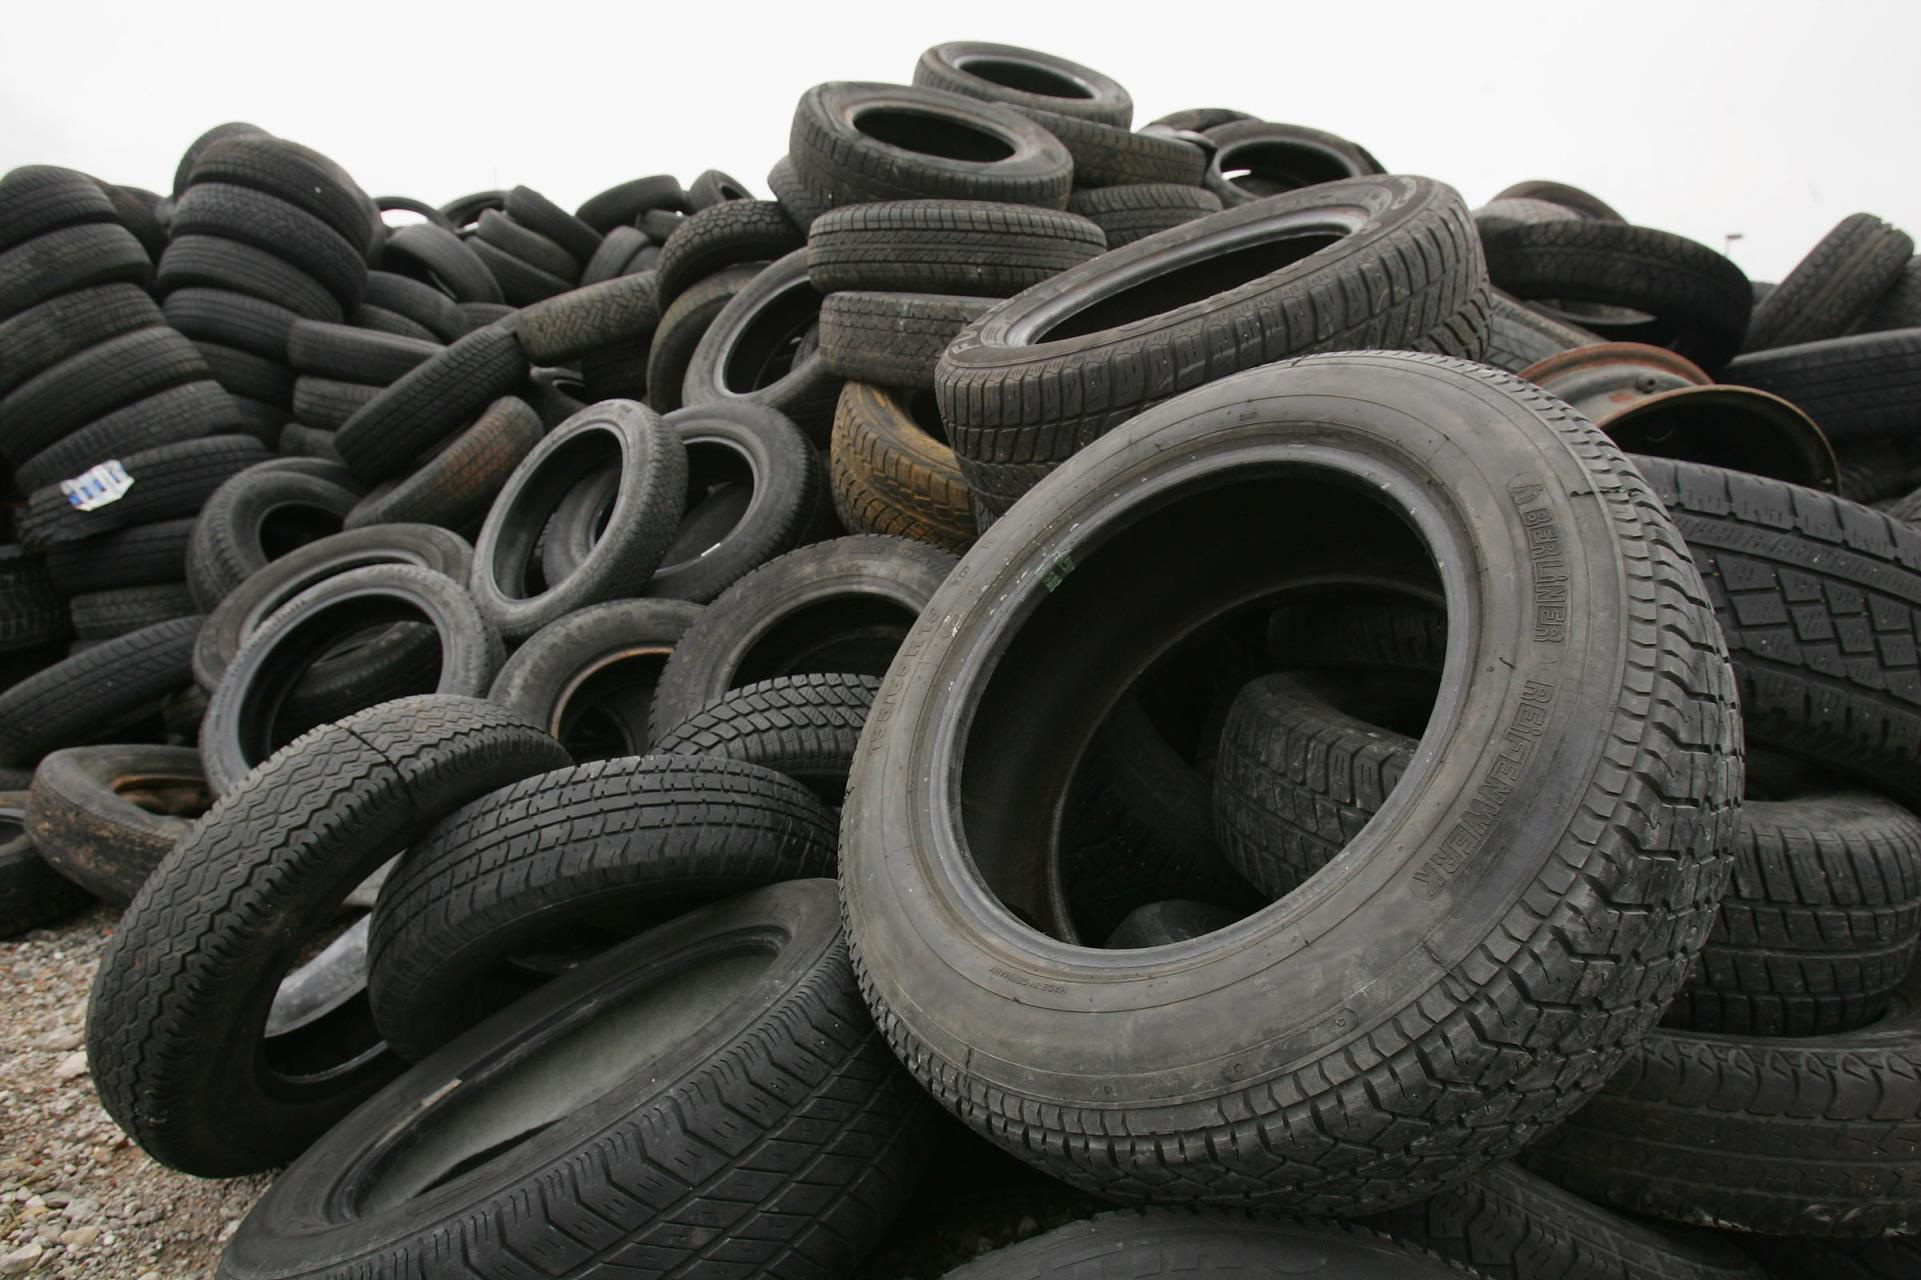 Picture of stack of old tires.